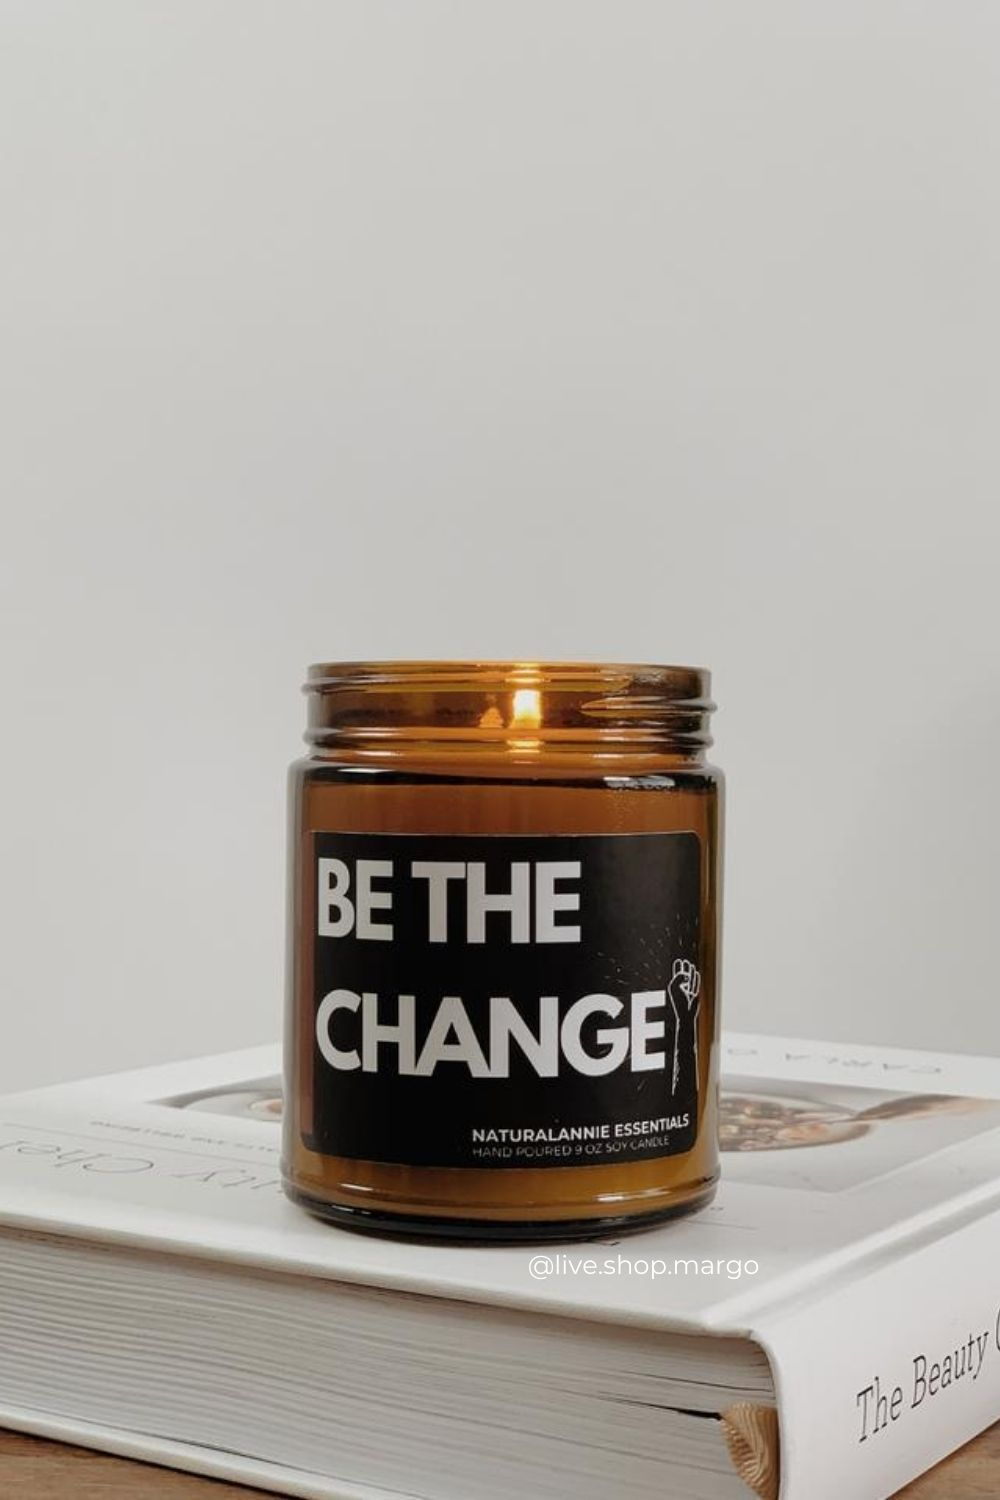 be the change naturalannie essentials soy candle